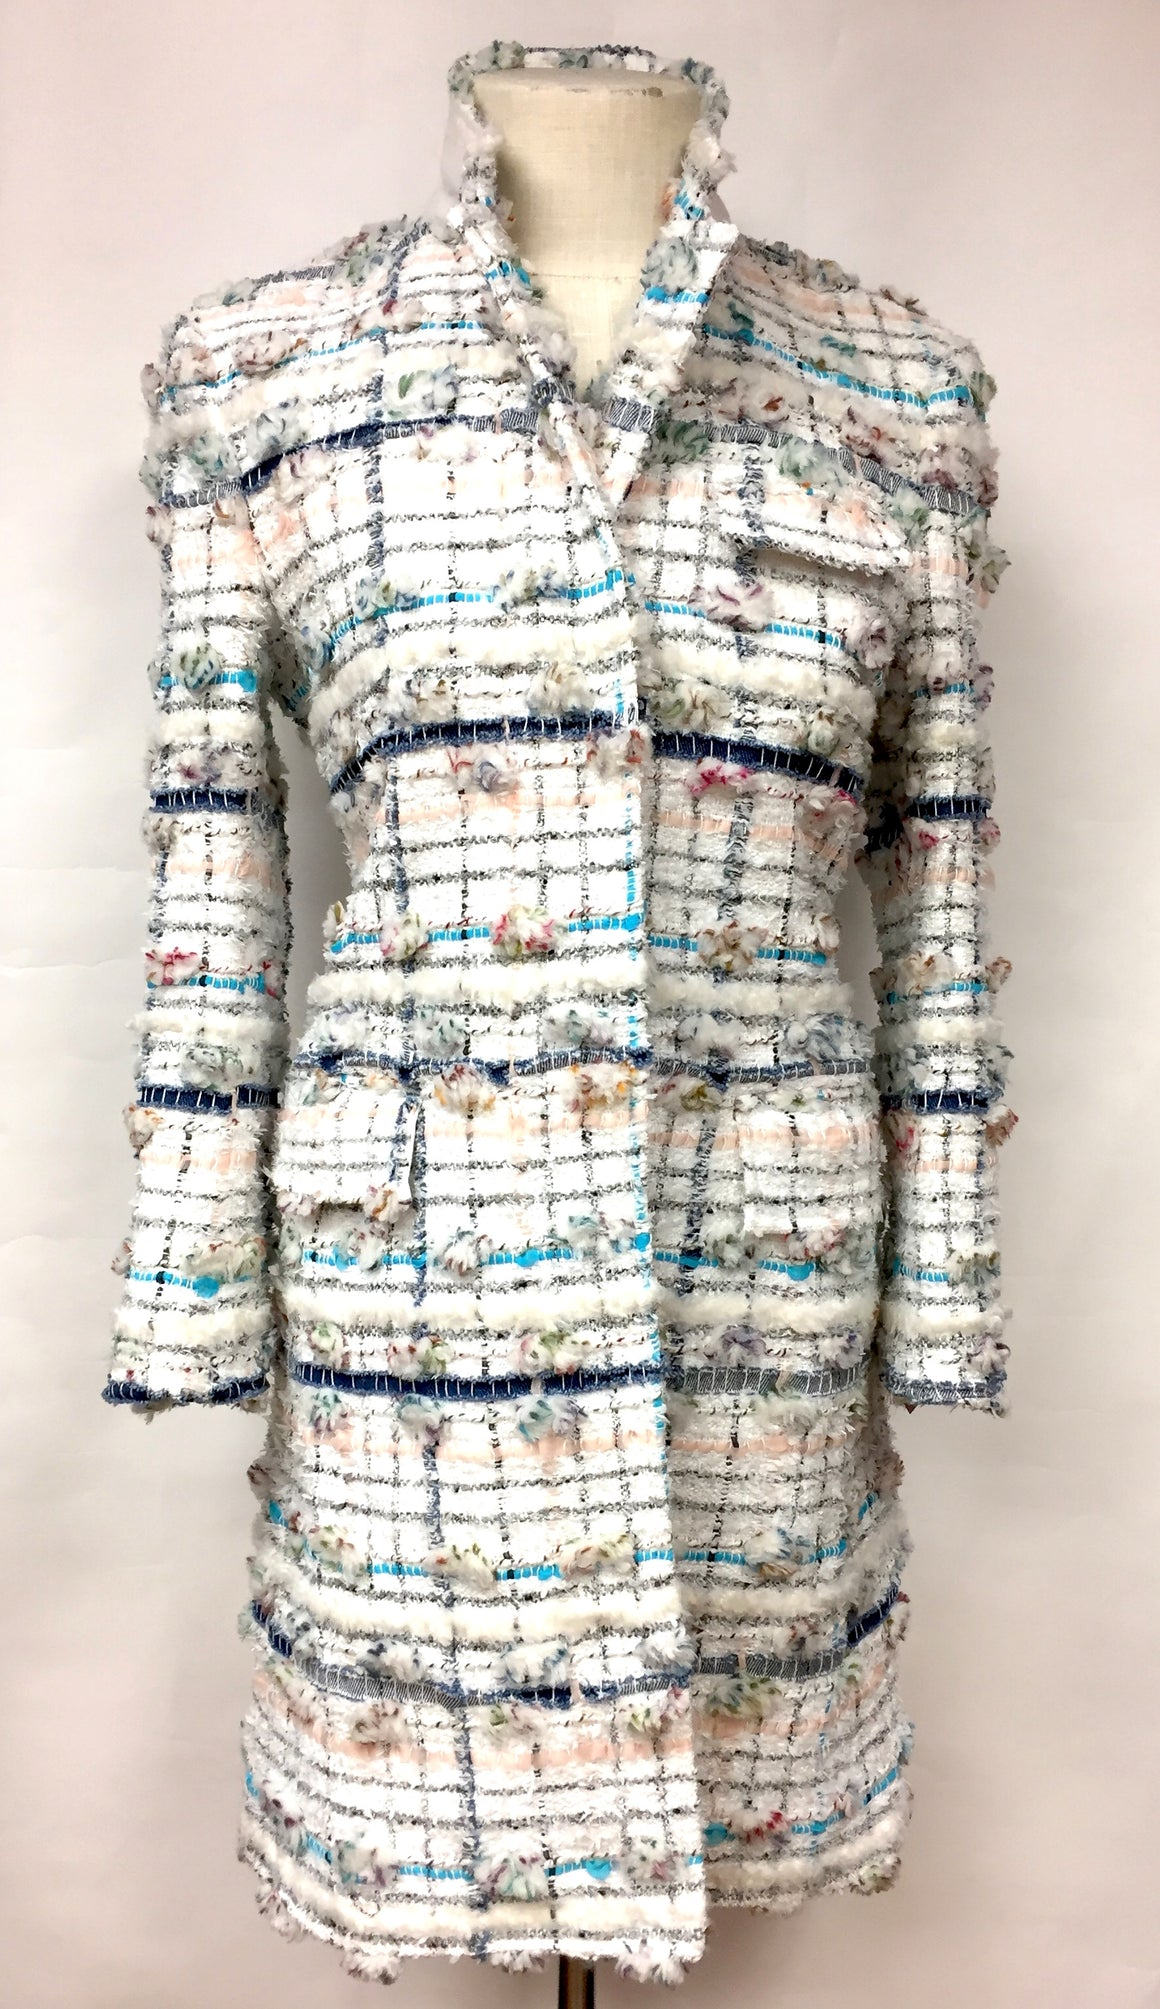 THOM BROWNE White/Multicolor Fantasy-Weave Shimmery Mixed Fibers Coat   Size: IT 40/ US 6